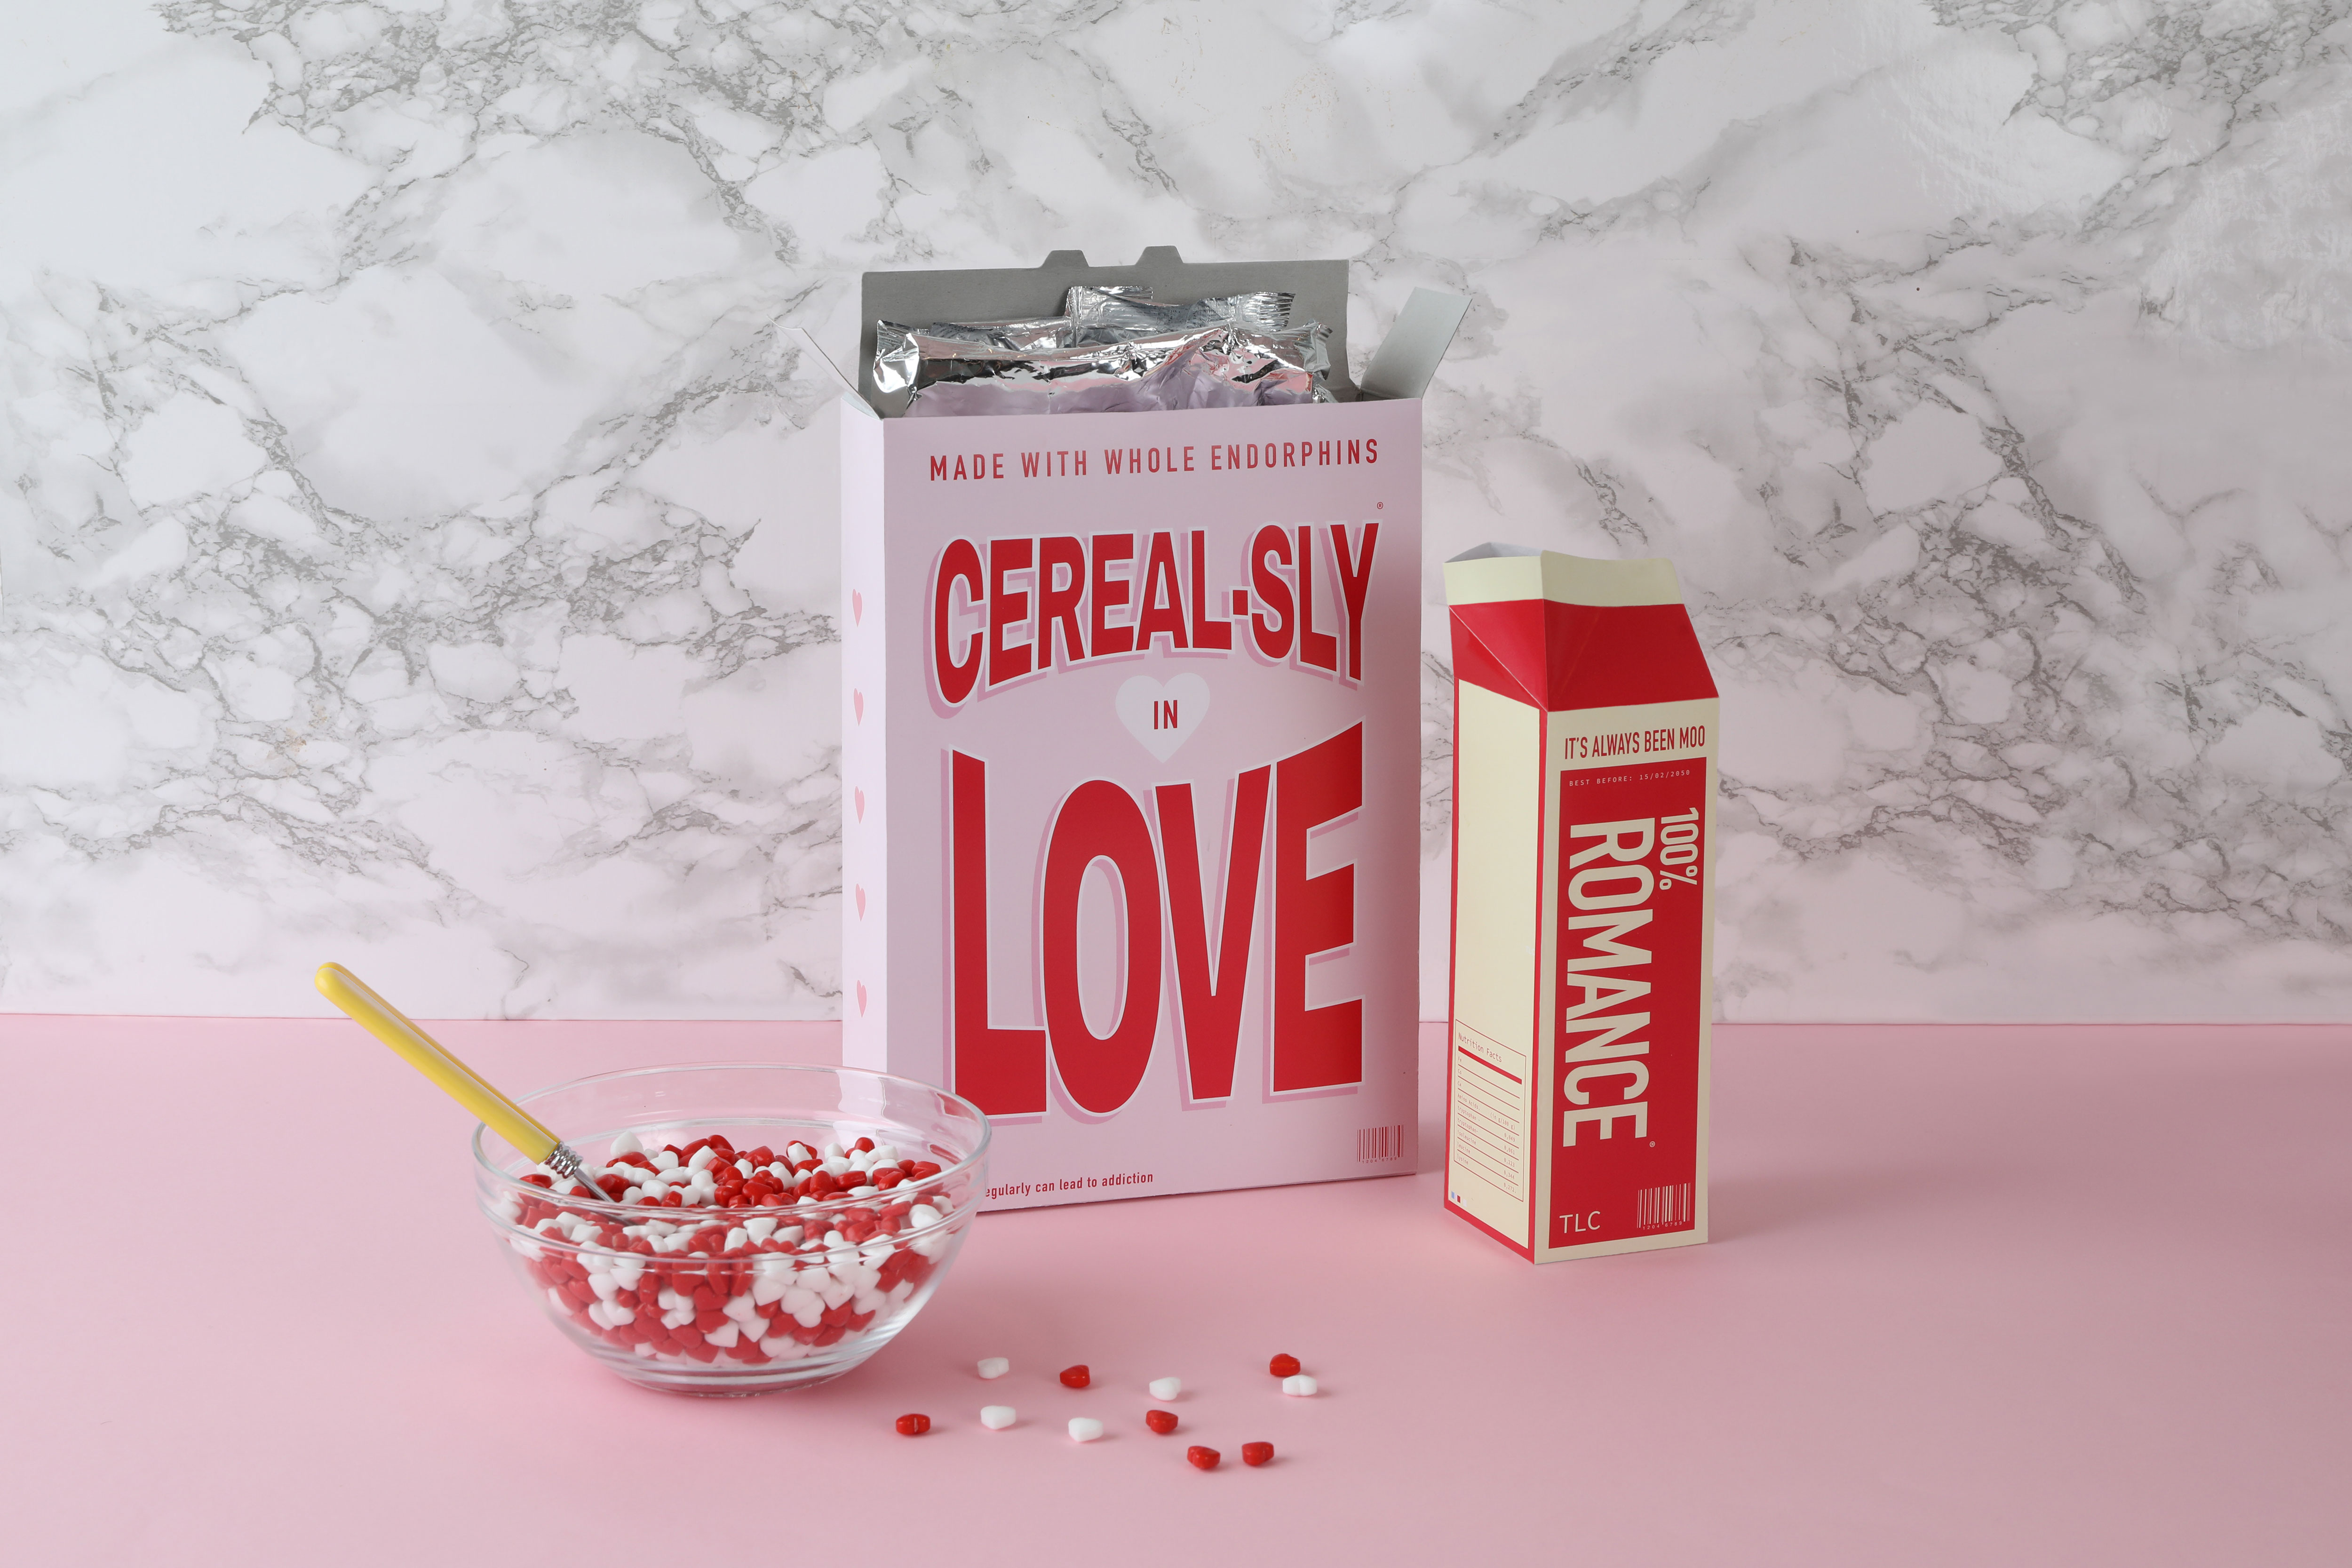 Love Cereal